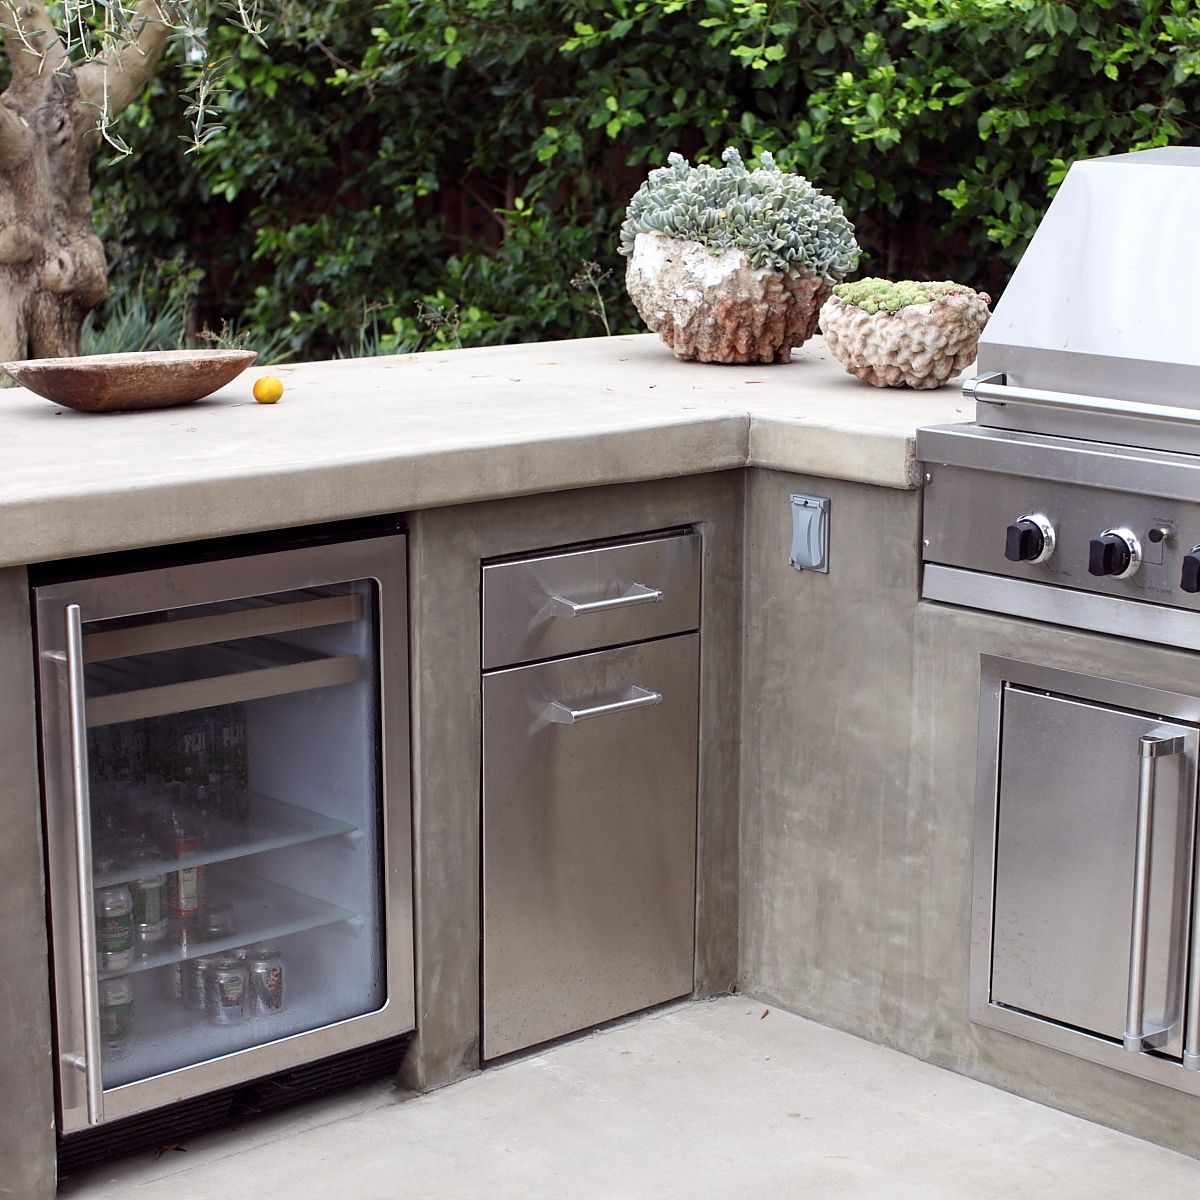 Outdoor Kitchen Cupboards: An Outdoor Fridge Is An Essential For A High End Built In